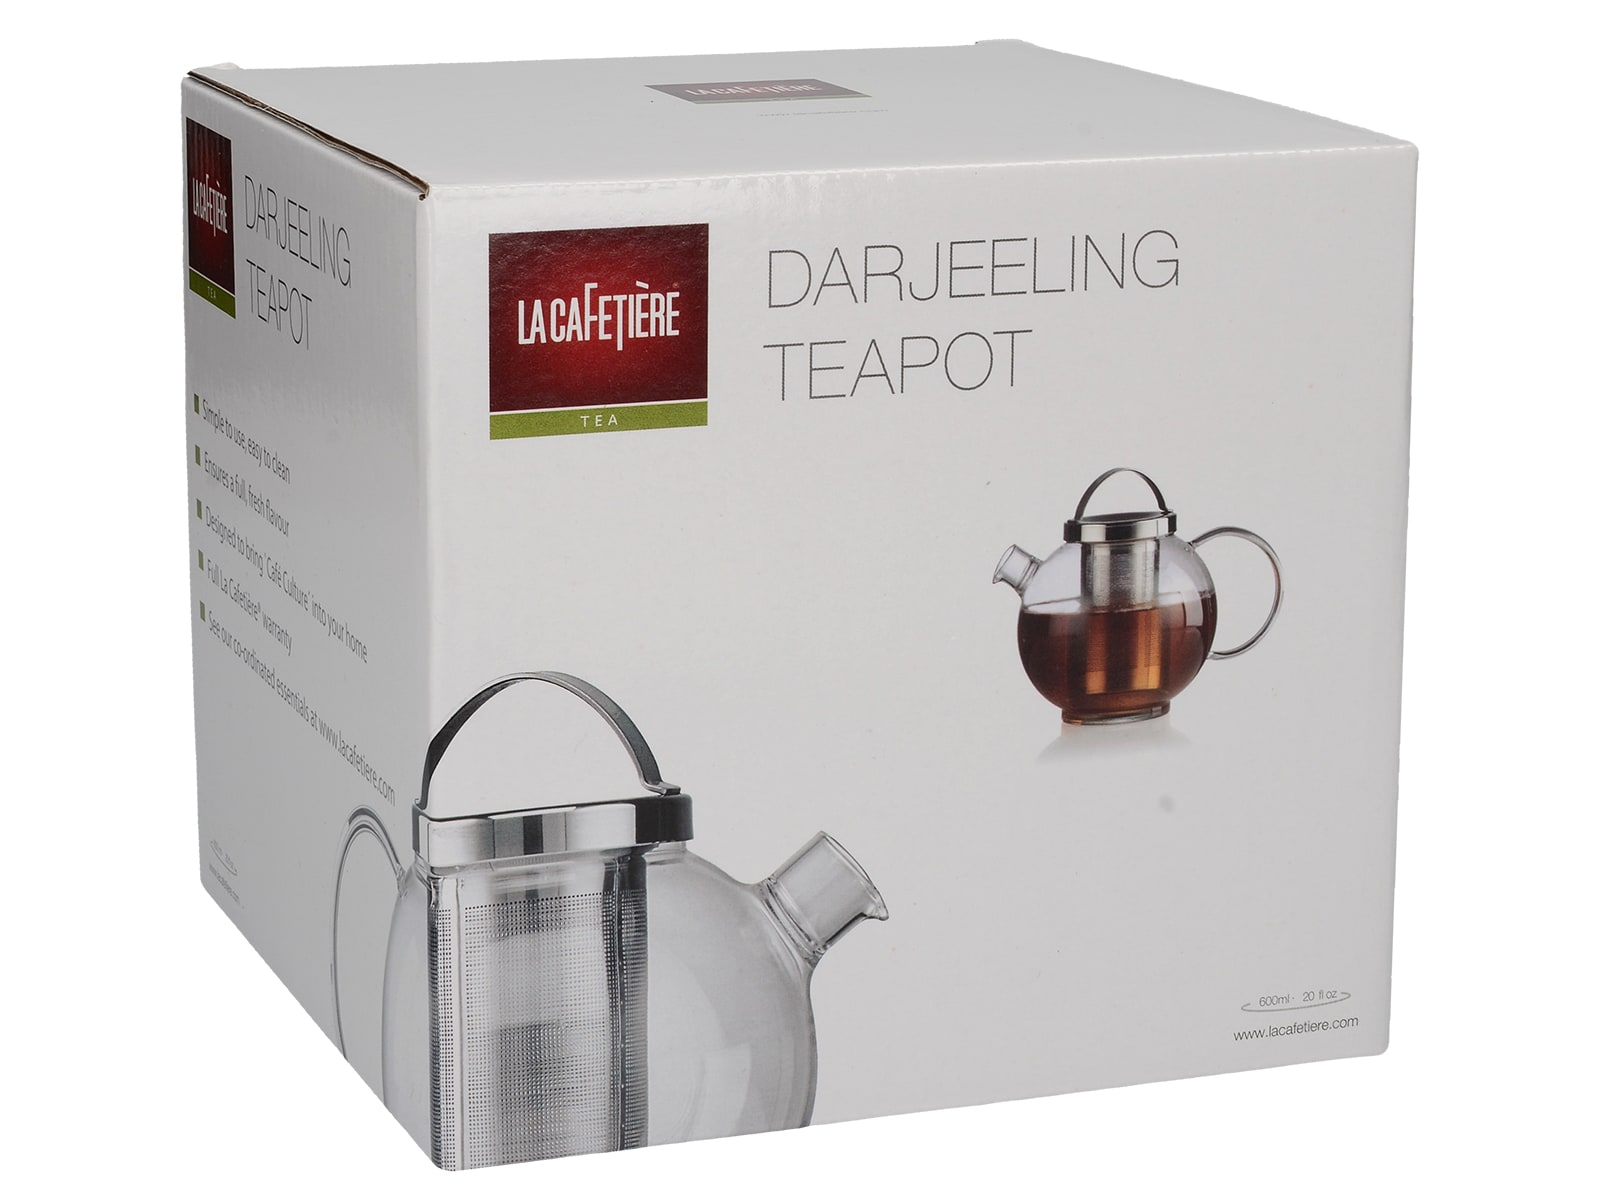 La Cafetiére 600ml Darjeeling Glass Teapot